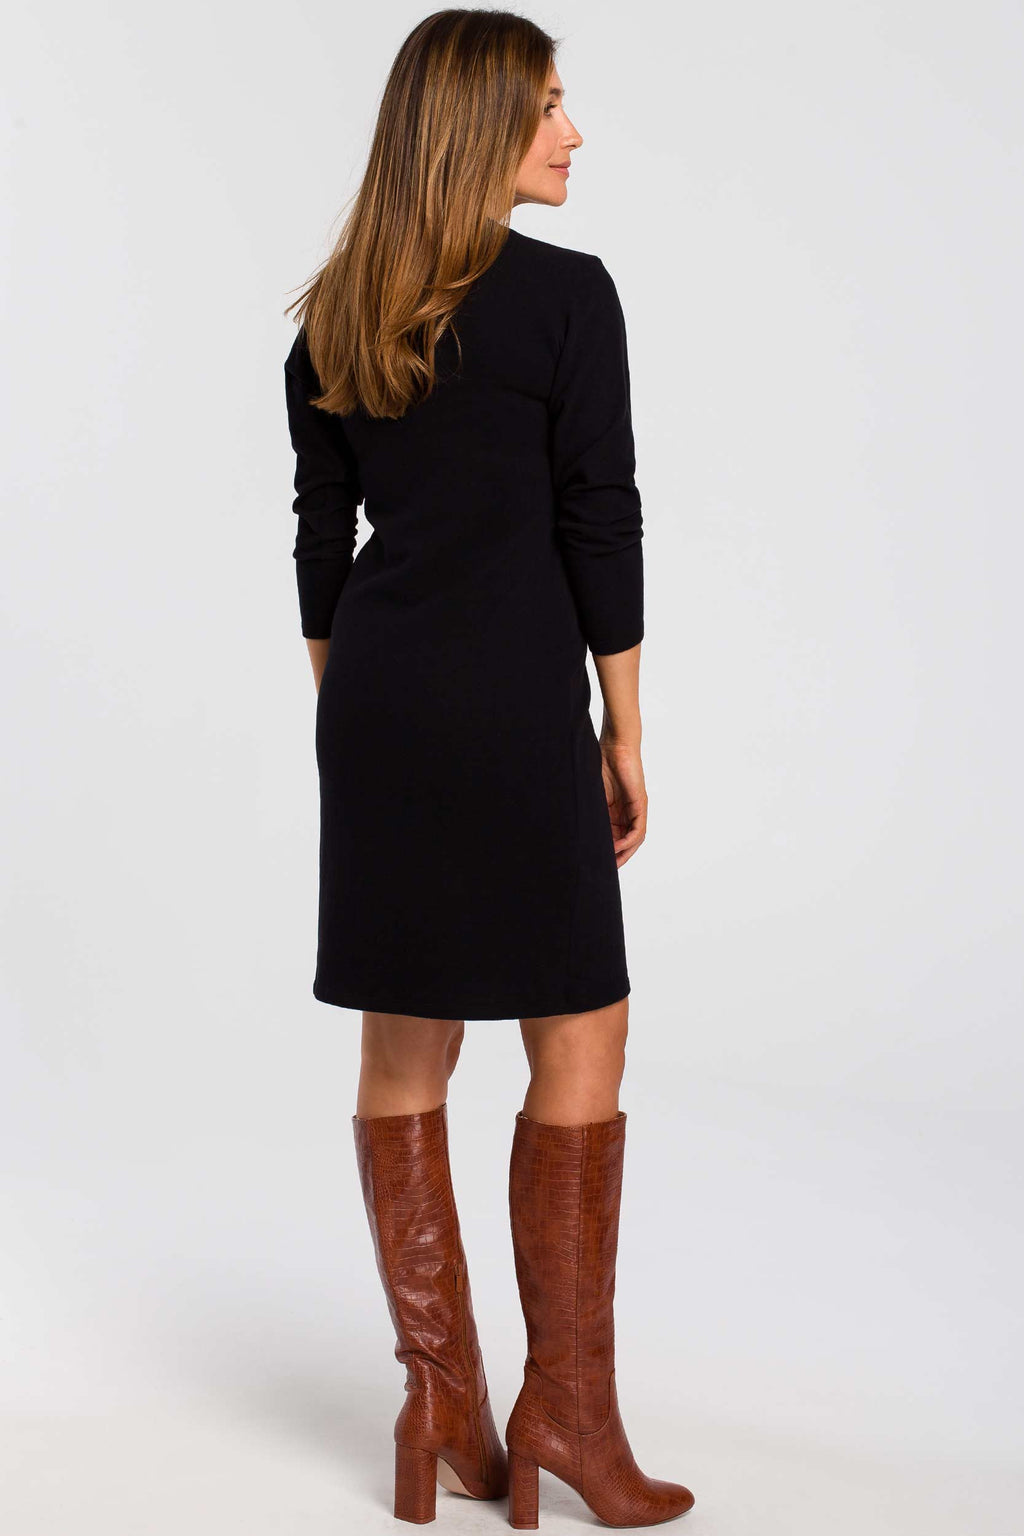 Long Sleeve Midi Black Cotton Sweater Dress - So Chic Boutique